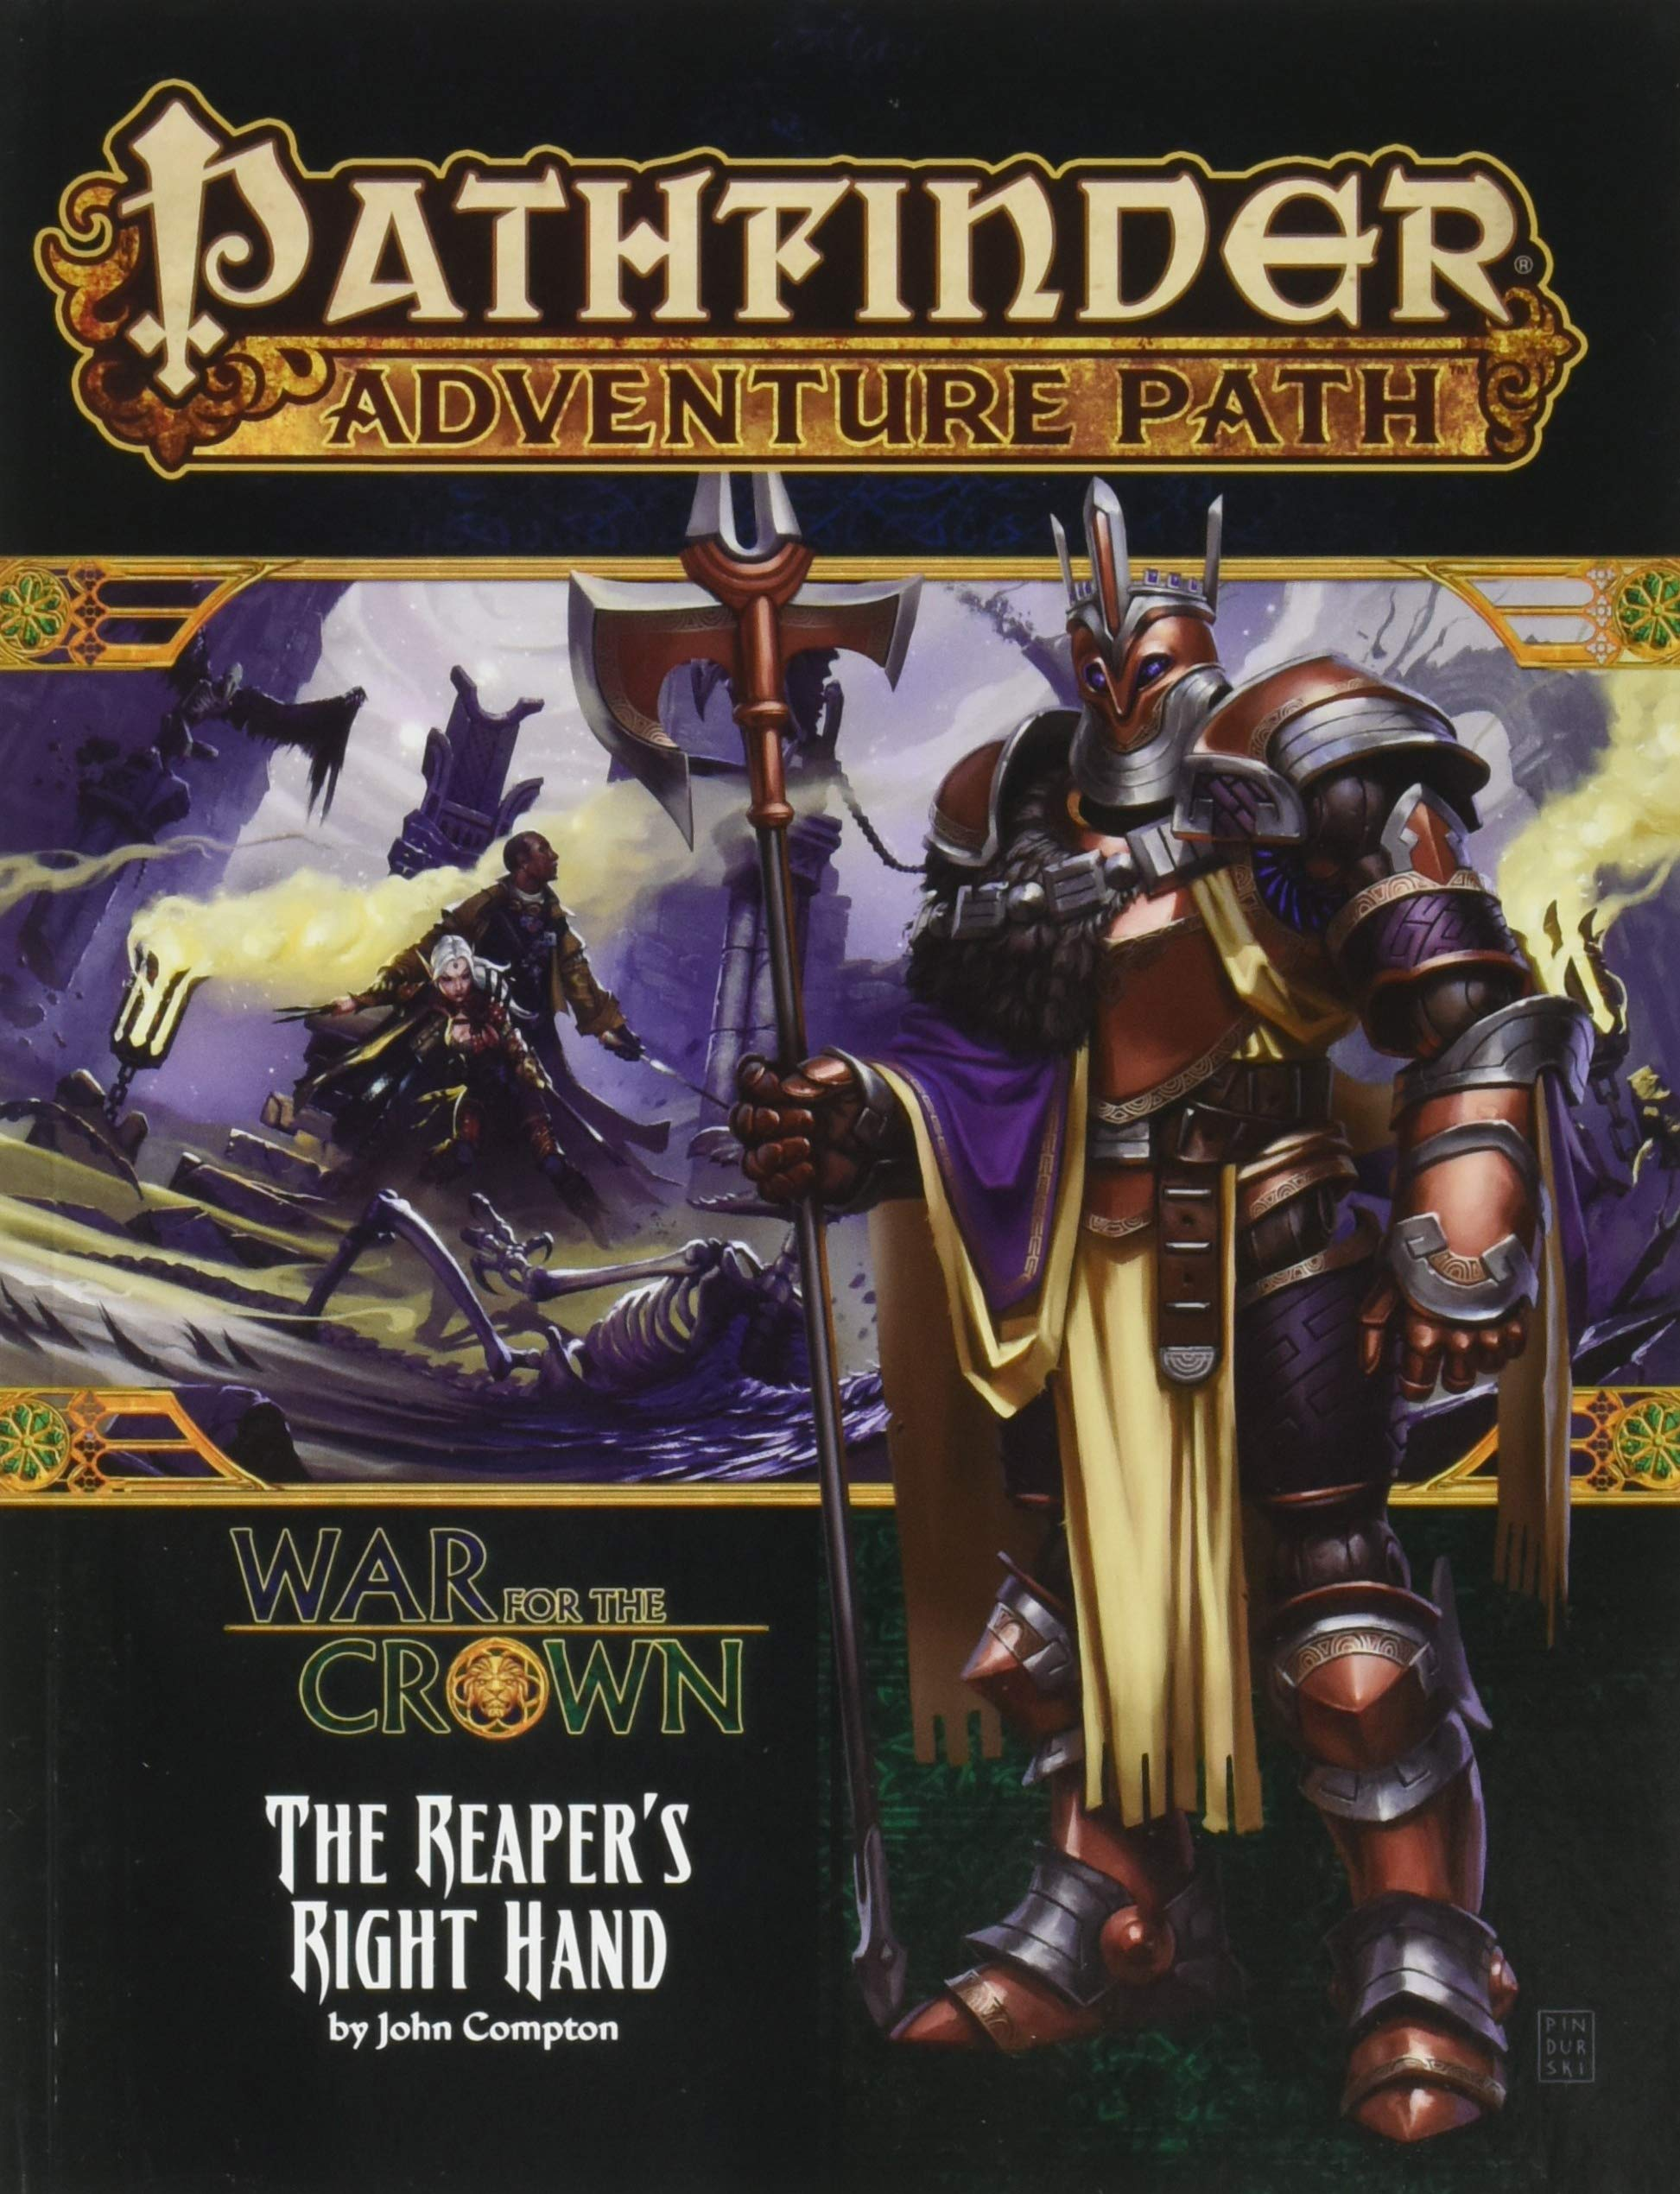 Pathfinder Adventure Path: The Reaper's Right Hand (War for